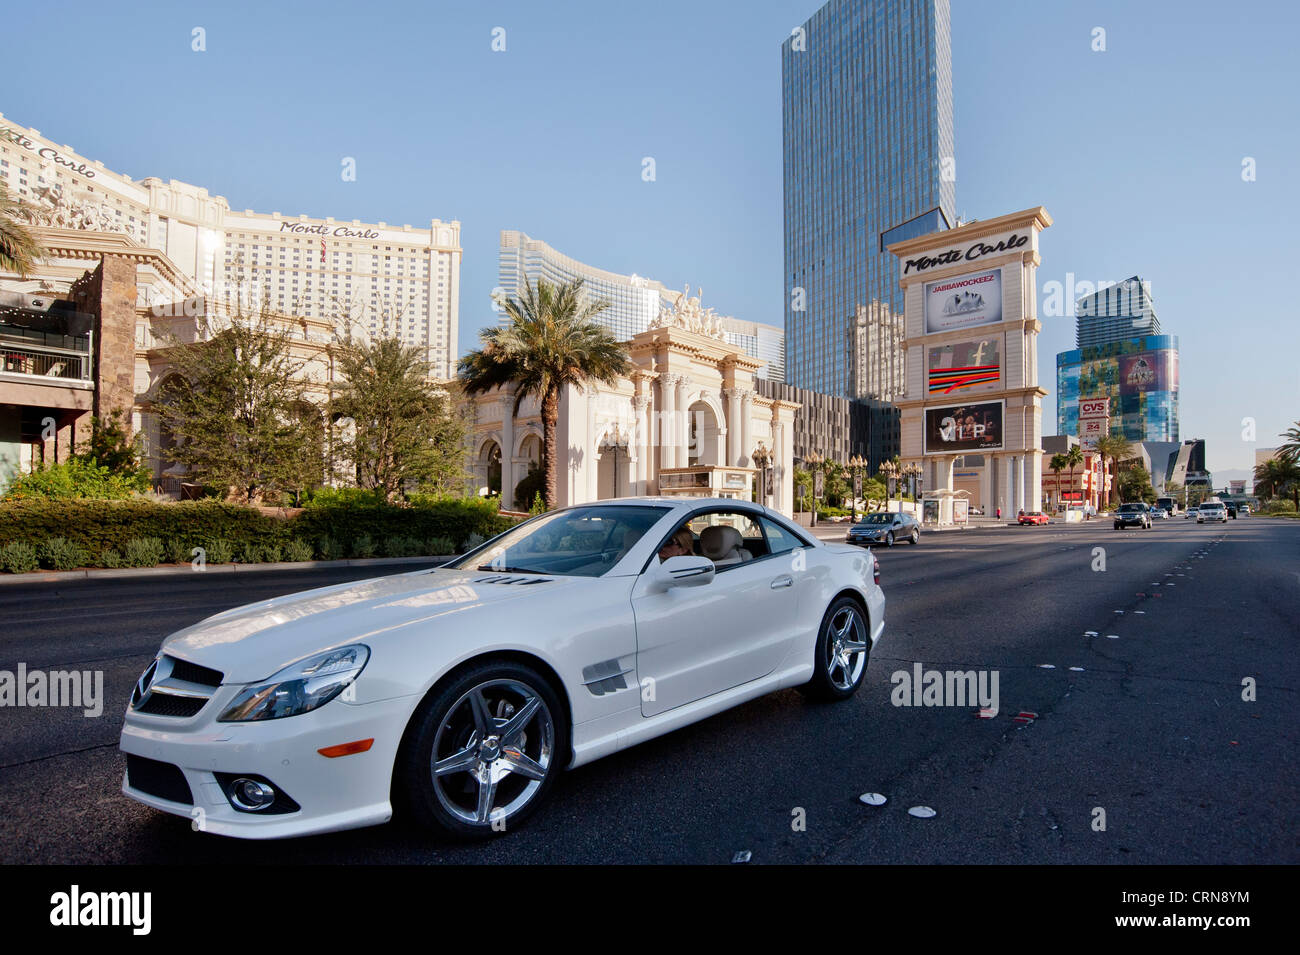 Mercedes Benz Sports Car In Front Of Monte Carlo Hotel On Las